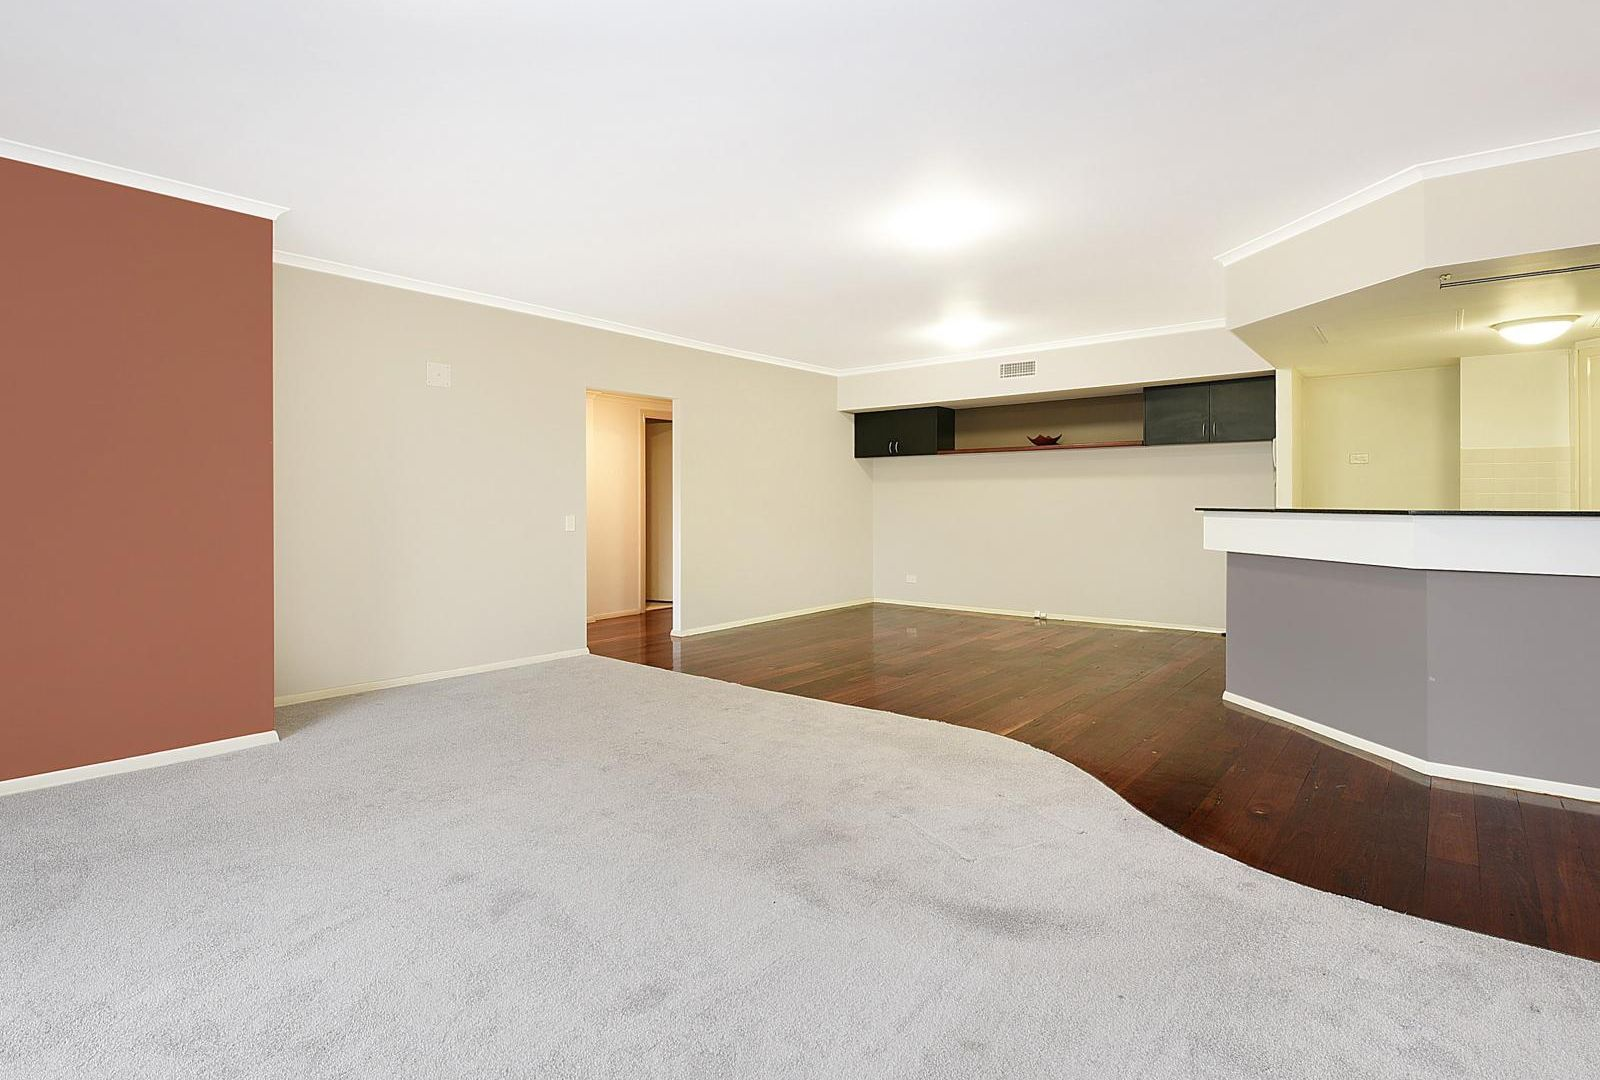 203/11 Wentworth Street, Manly NSW 2095, Image 1